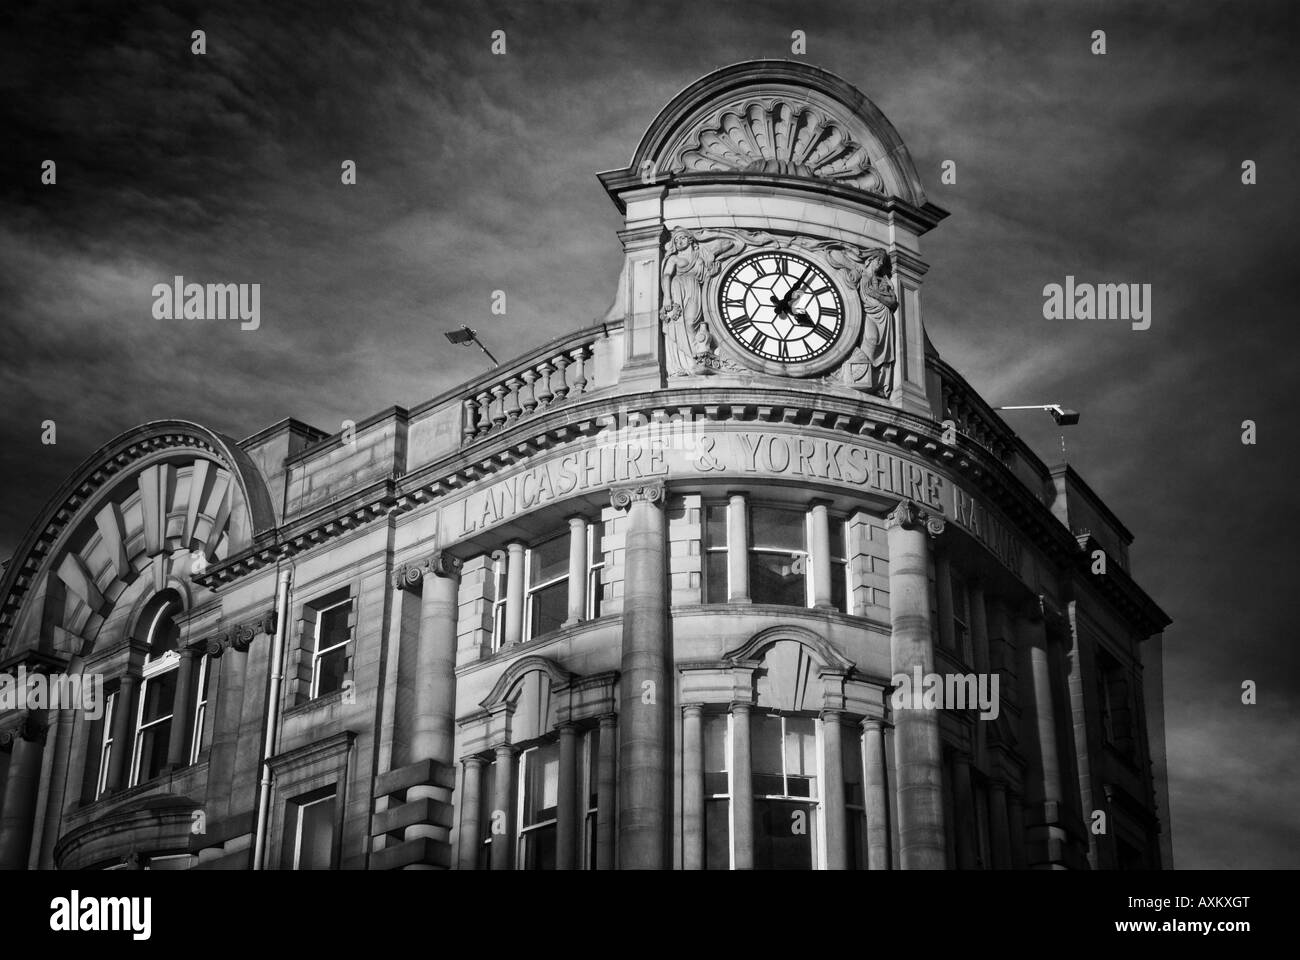 Victoria Railway Station Manchester Clock tower - Stock Image